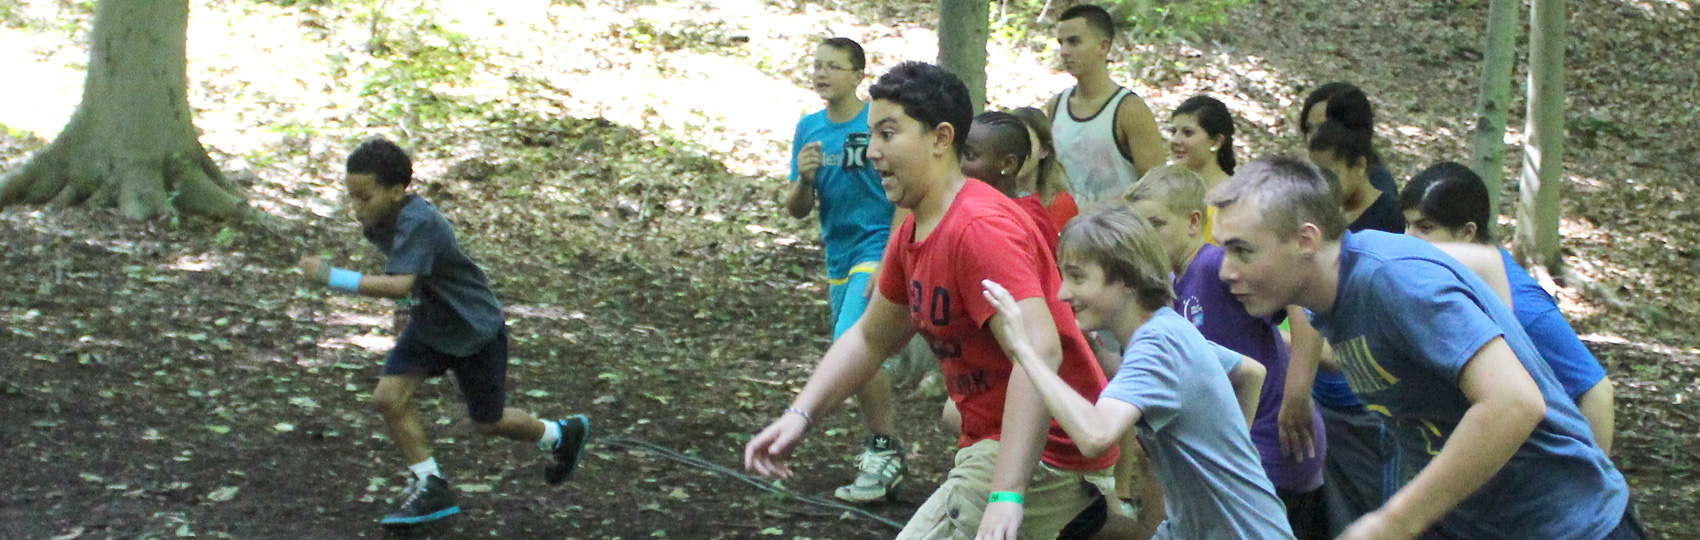 Running up the Hill at Camp Can Do